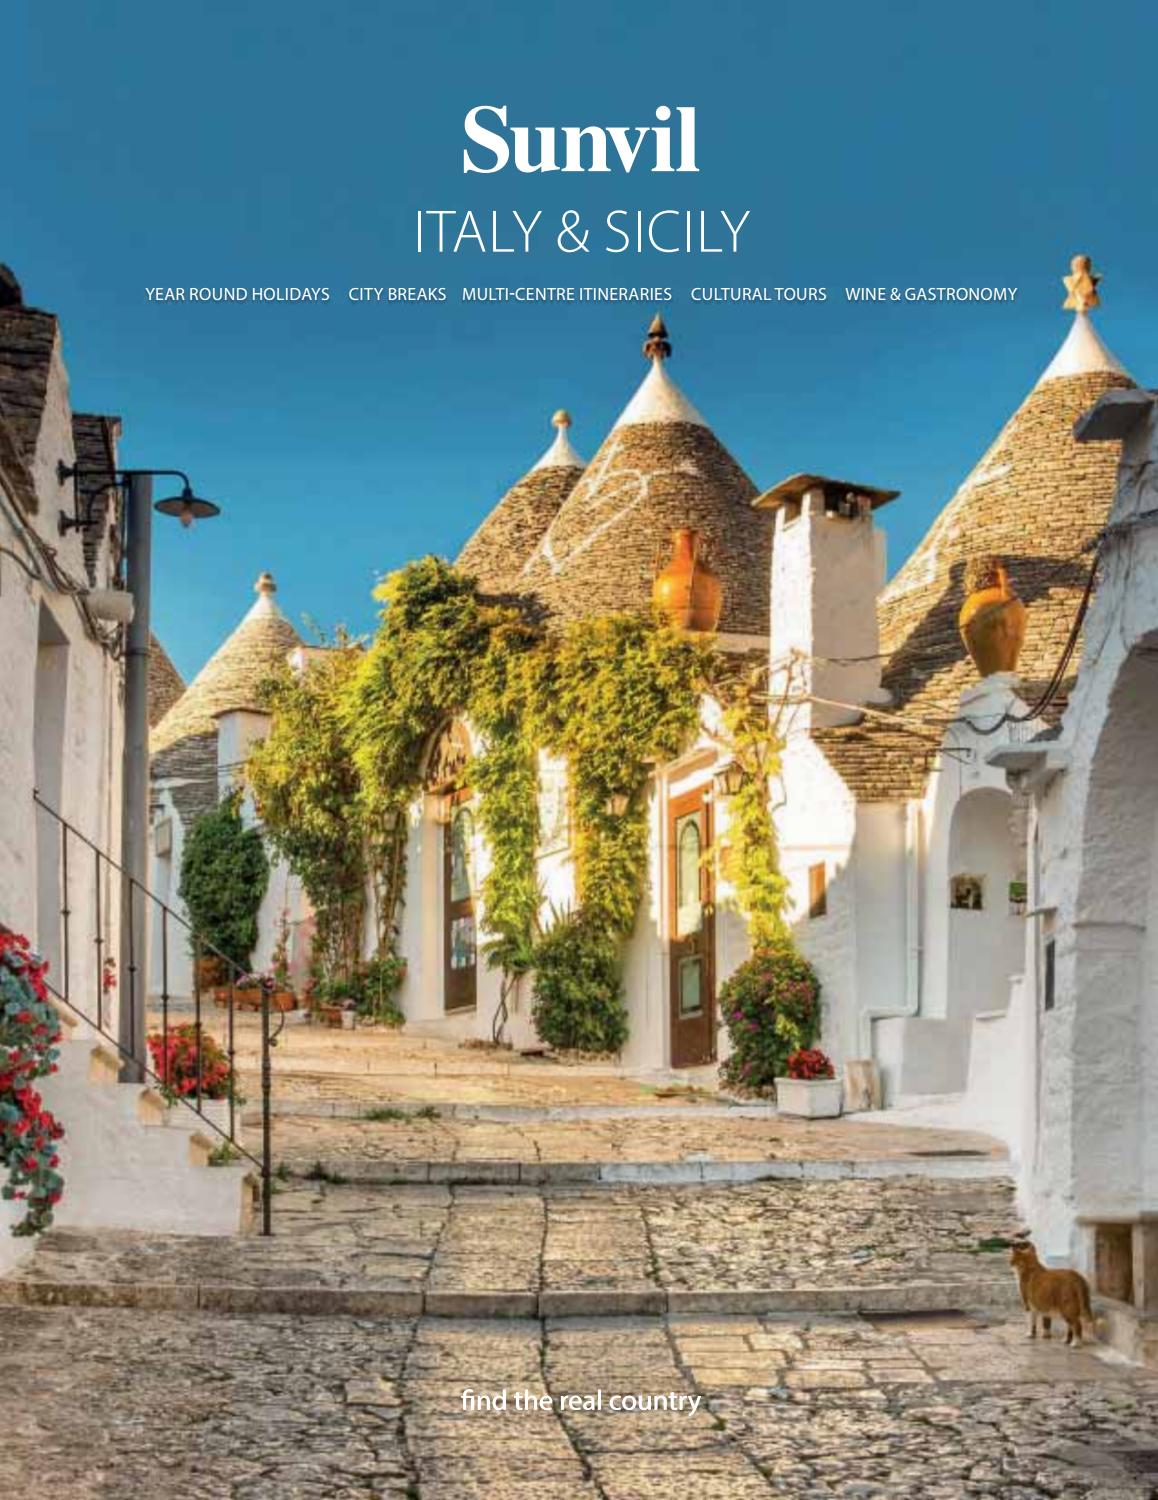 Sunvil Italy Sicily By Travel Designers Issuu